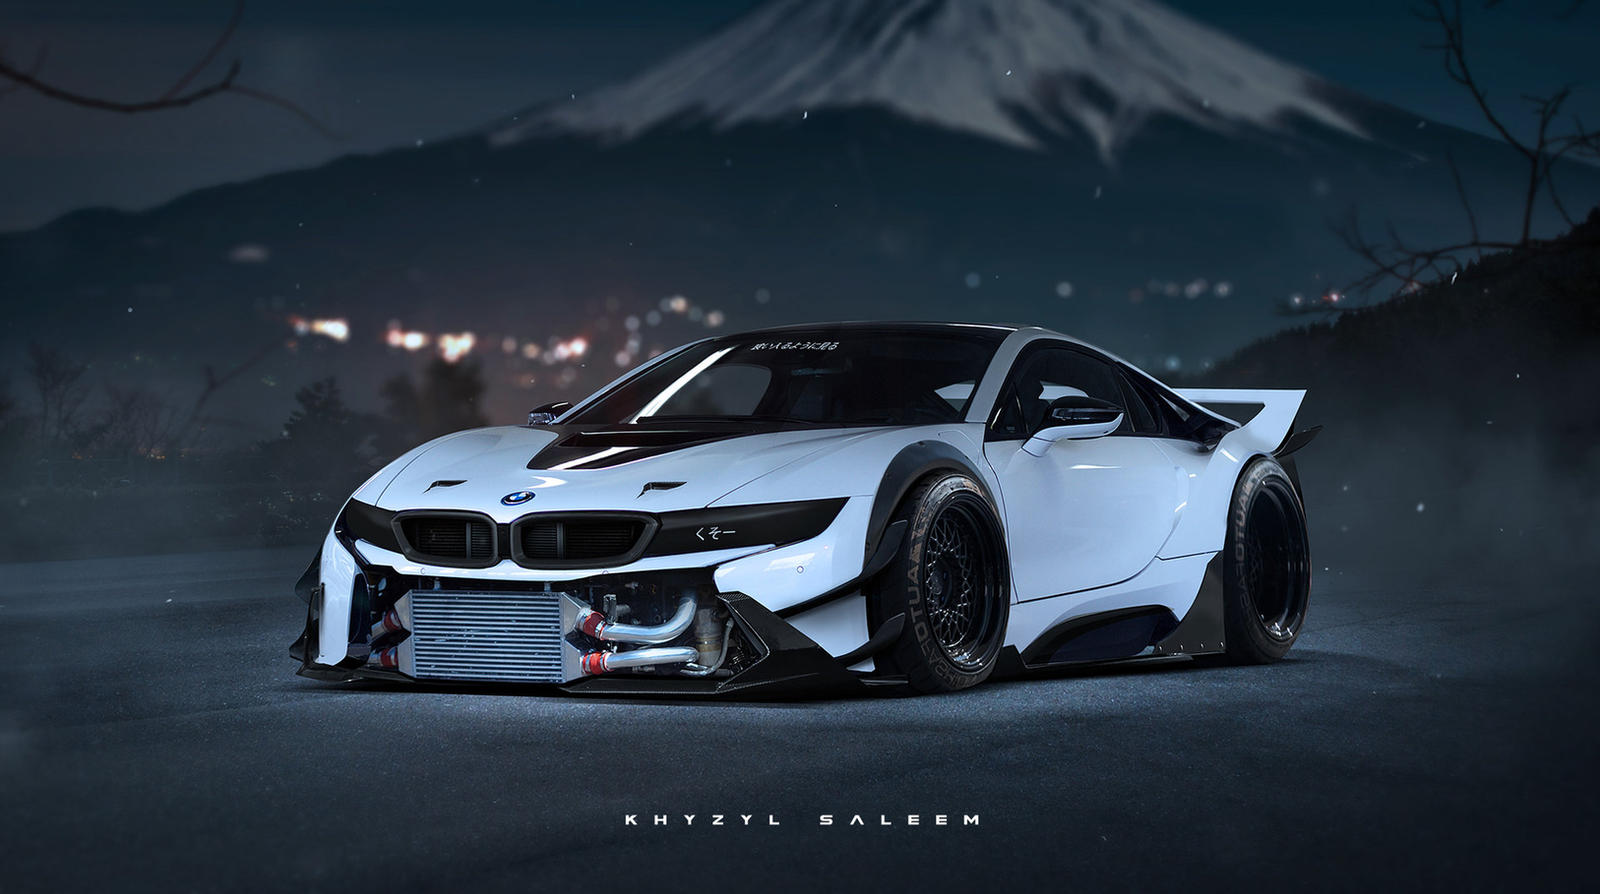 i8_by_the__kyza-d8zs5g9.jpg